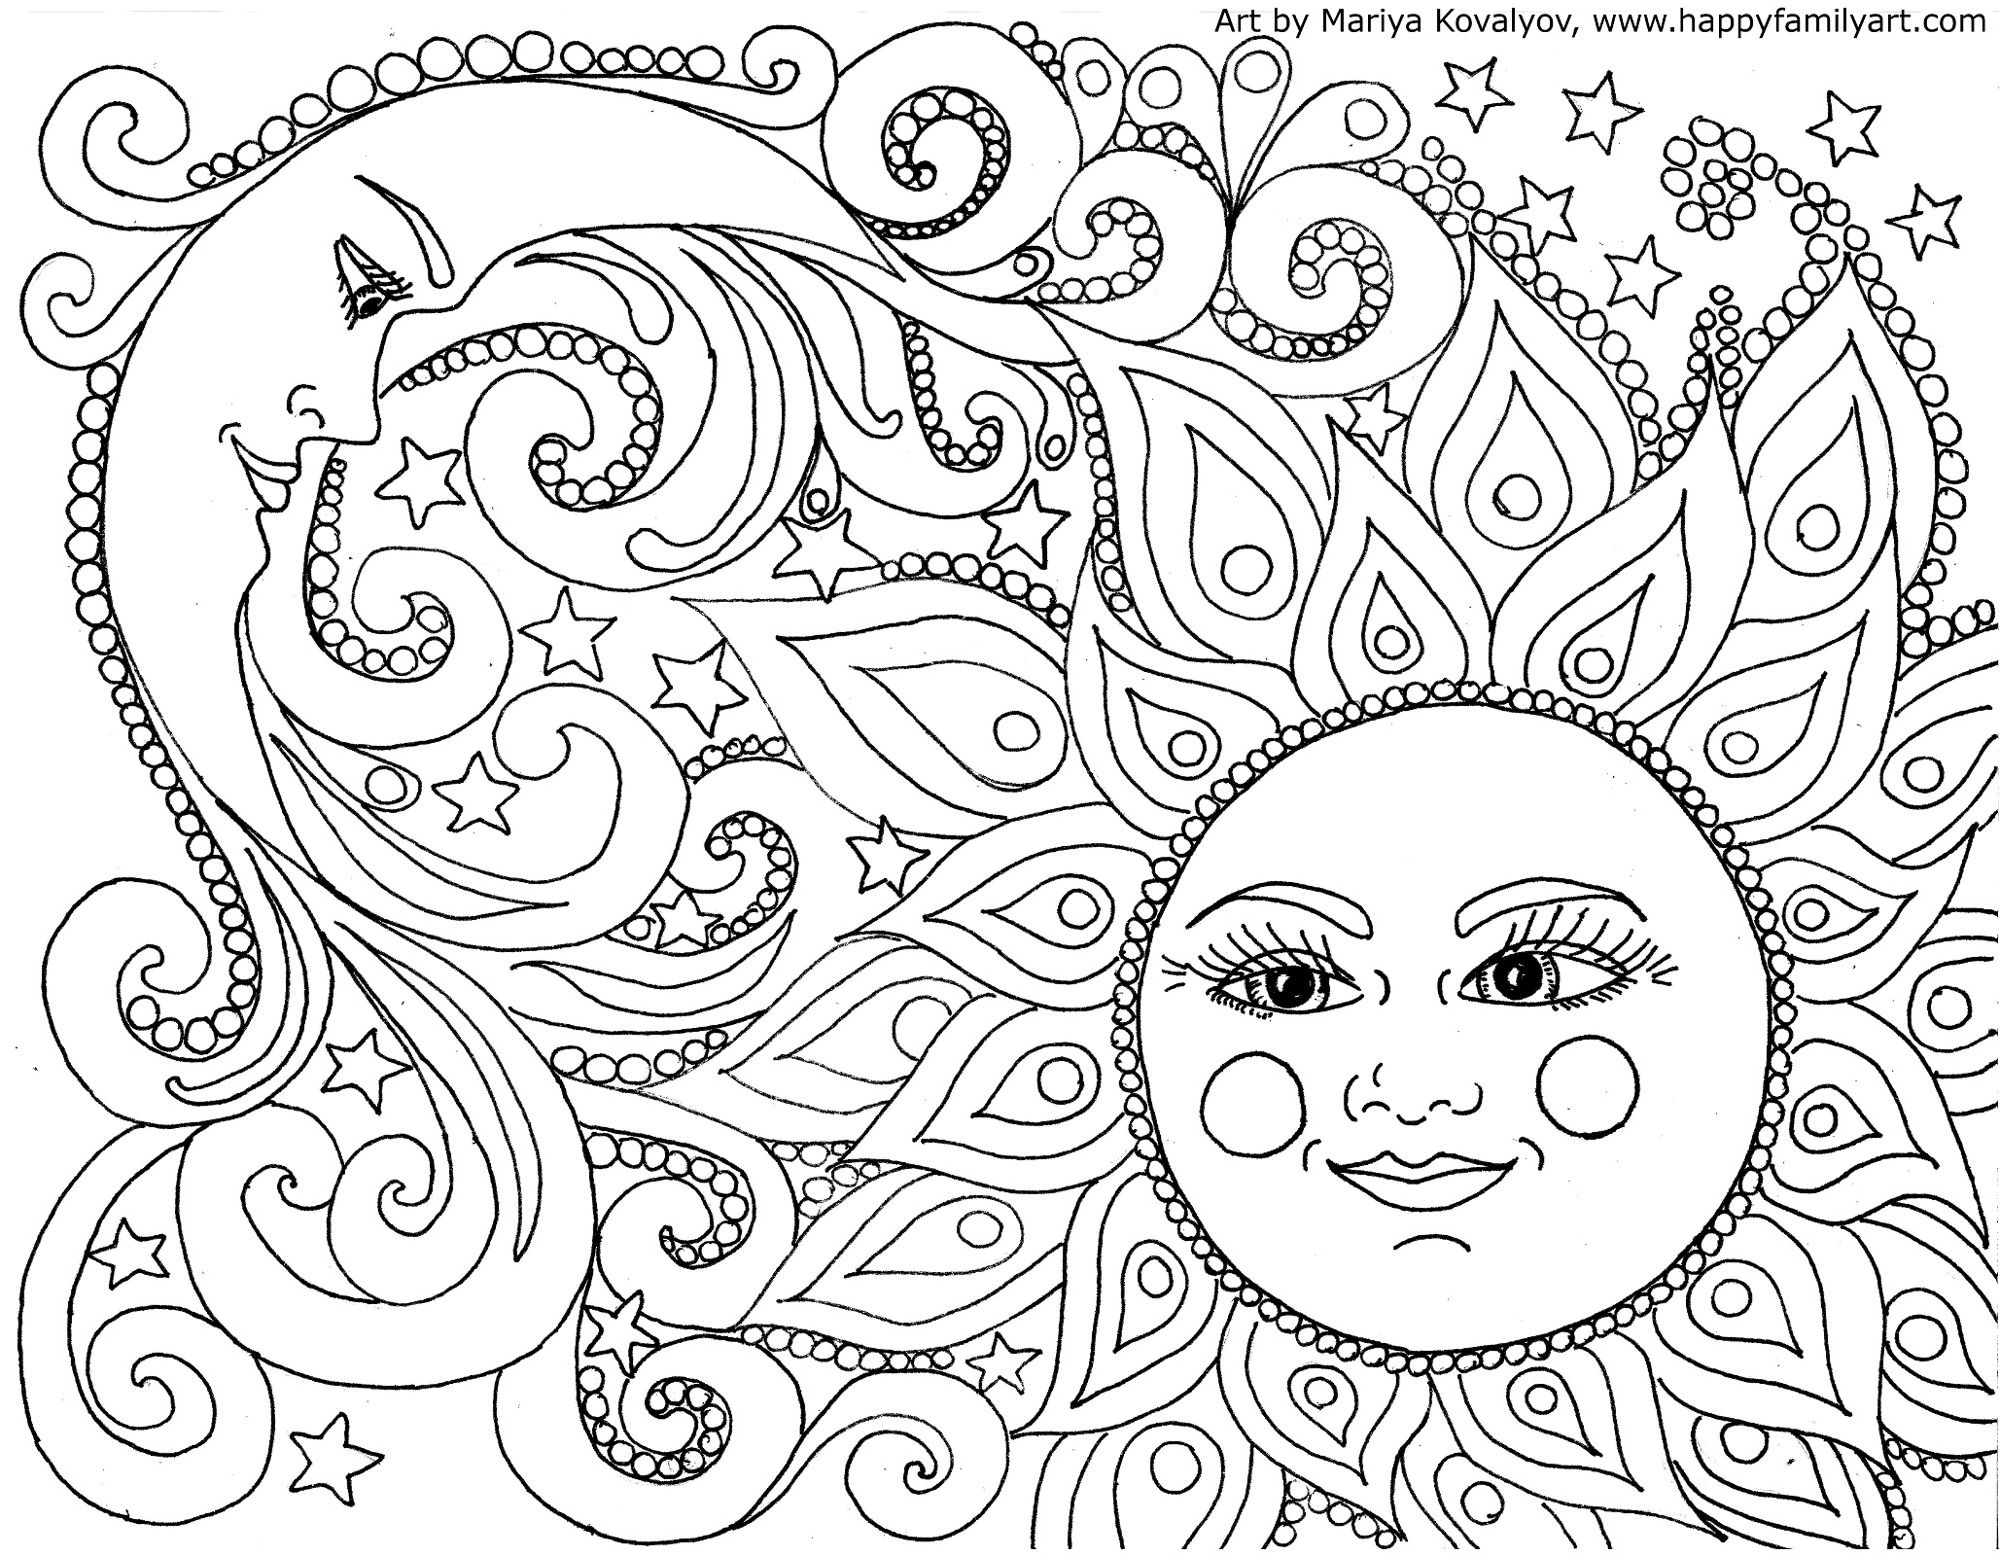 Free coloring pages for adults abstract - I Made Many Great Fun And Original Coloring Pages Color Your Heart Out